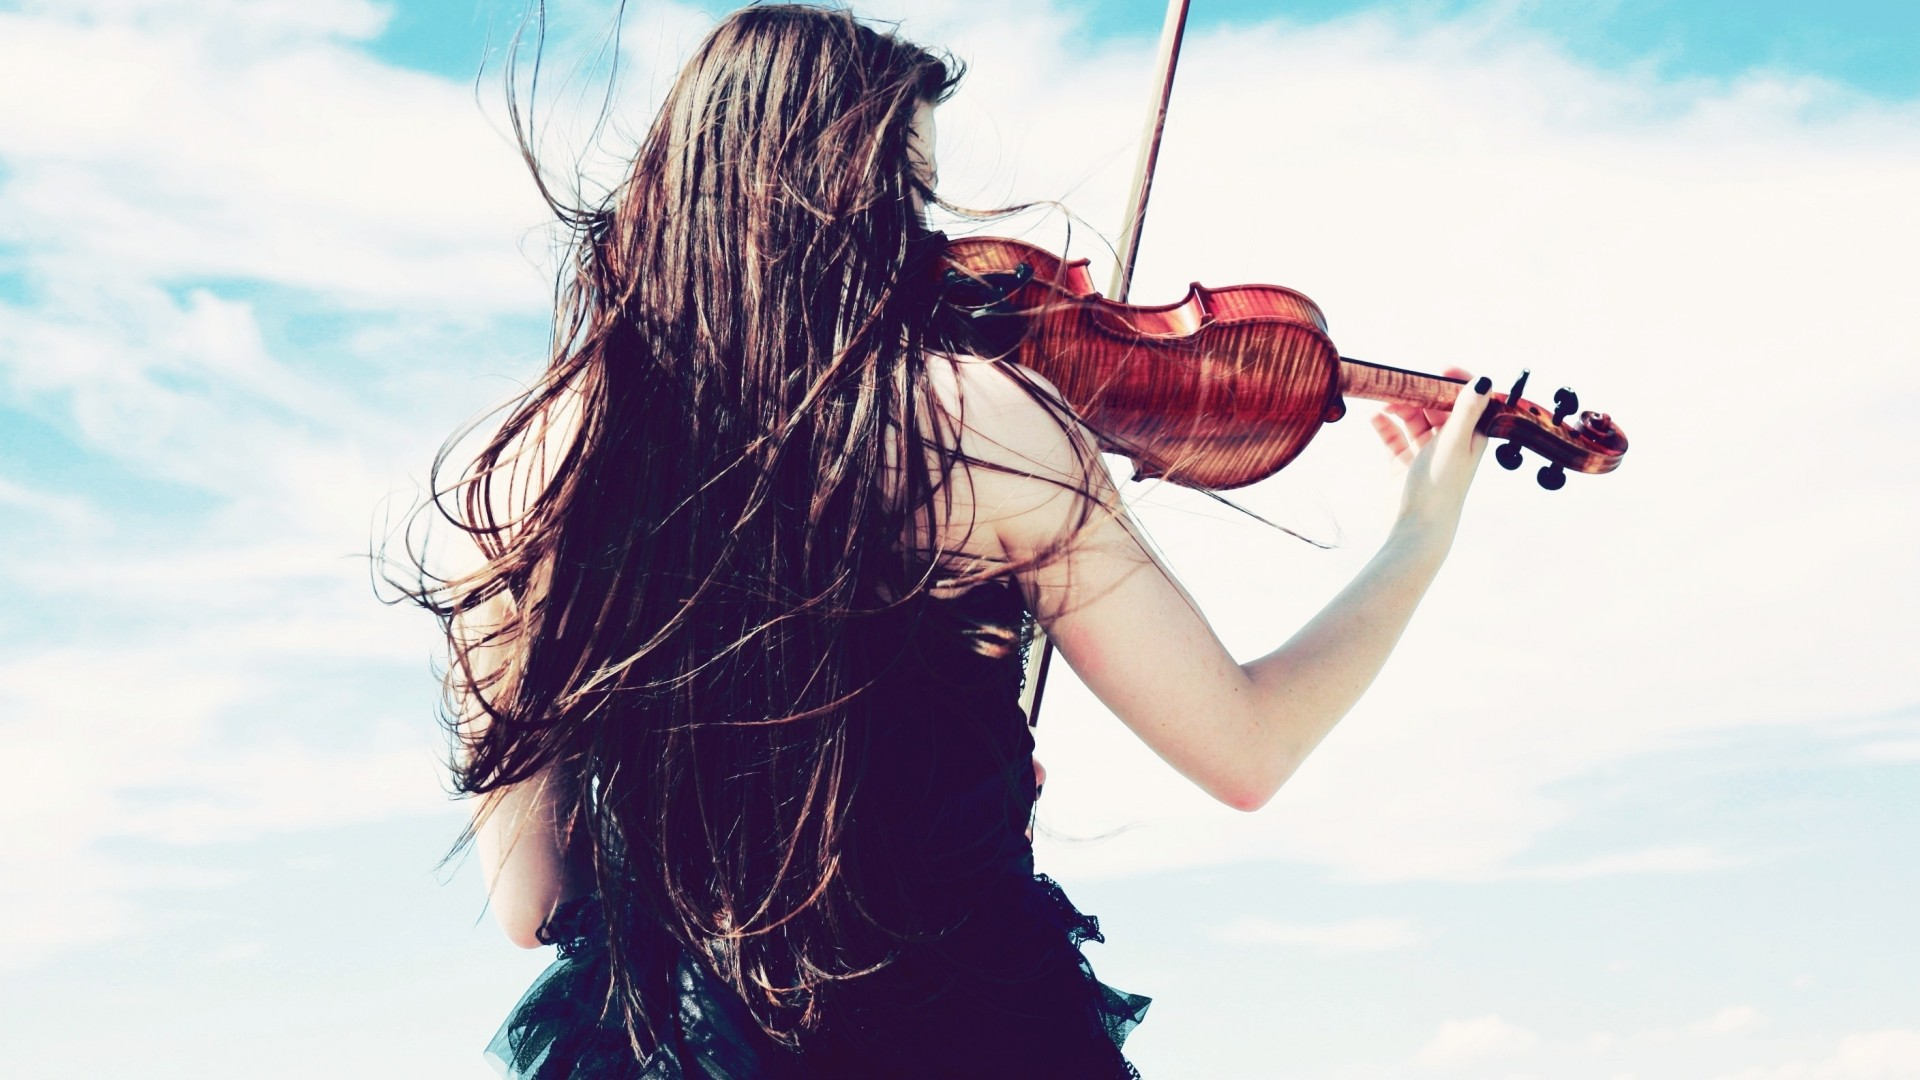 Violin Wallpaper High Definition High Quality Widescreen